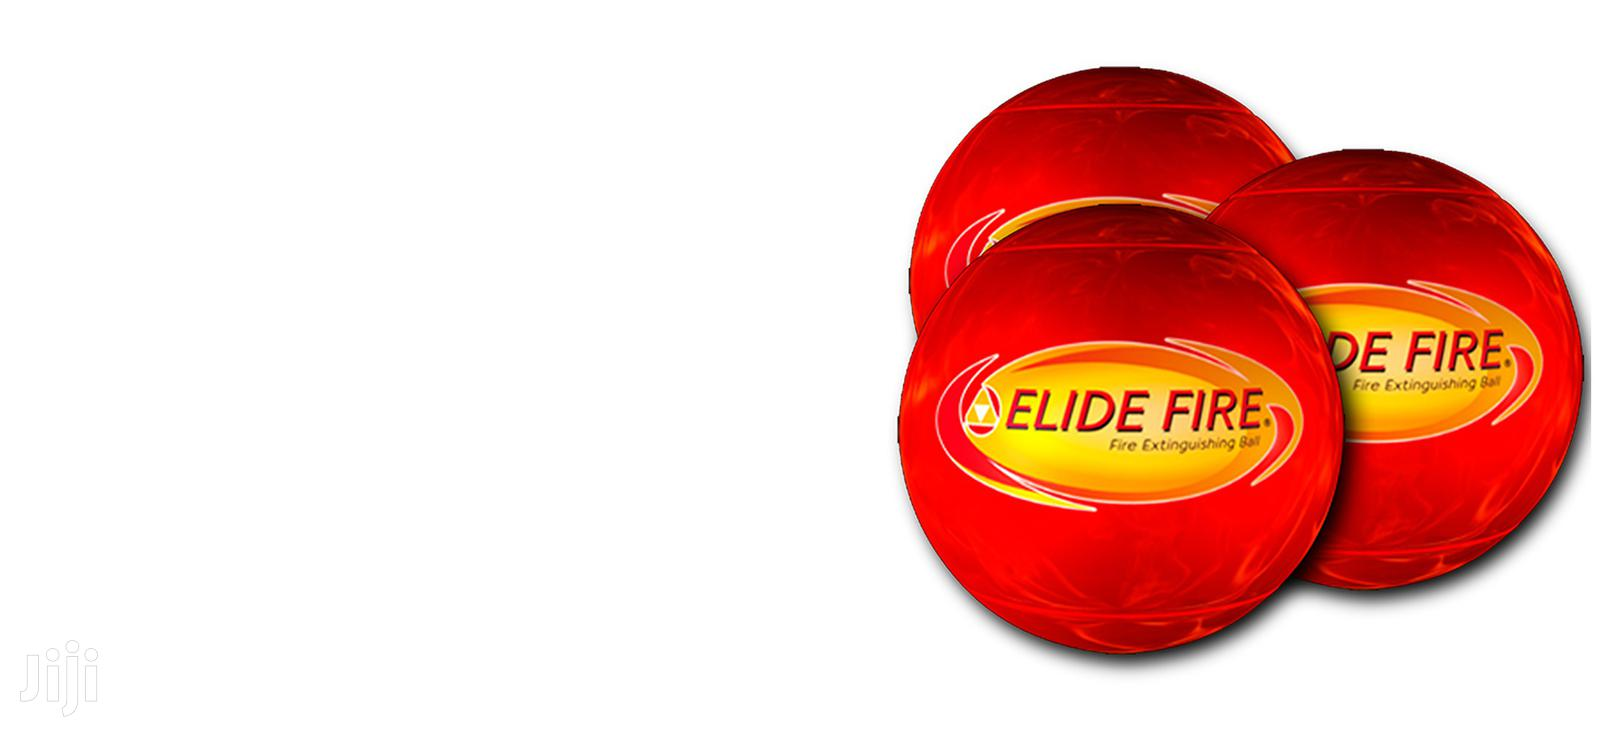 Effective Fire Extinguishing ELIDE Ball At Low Prices Nationwide